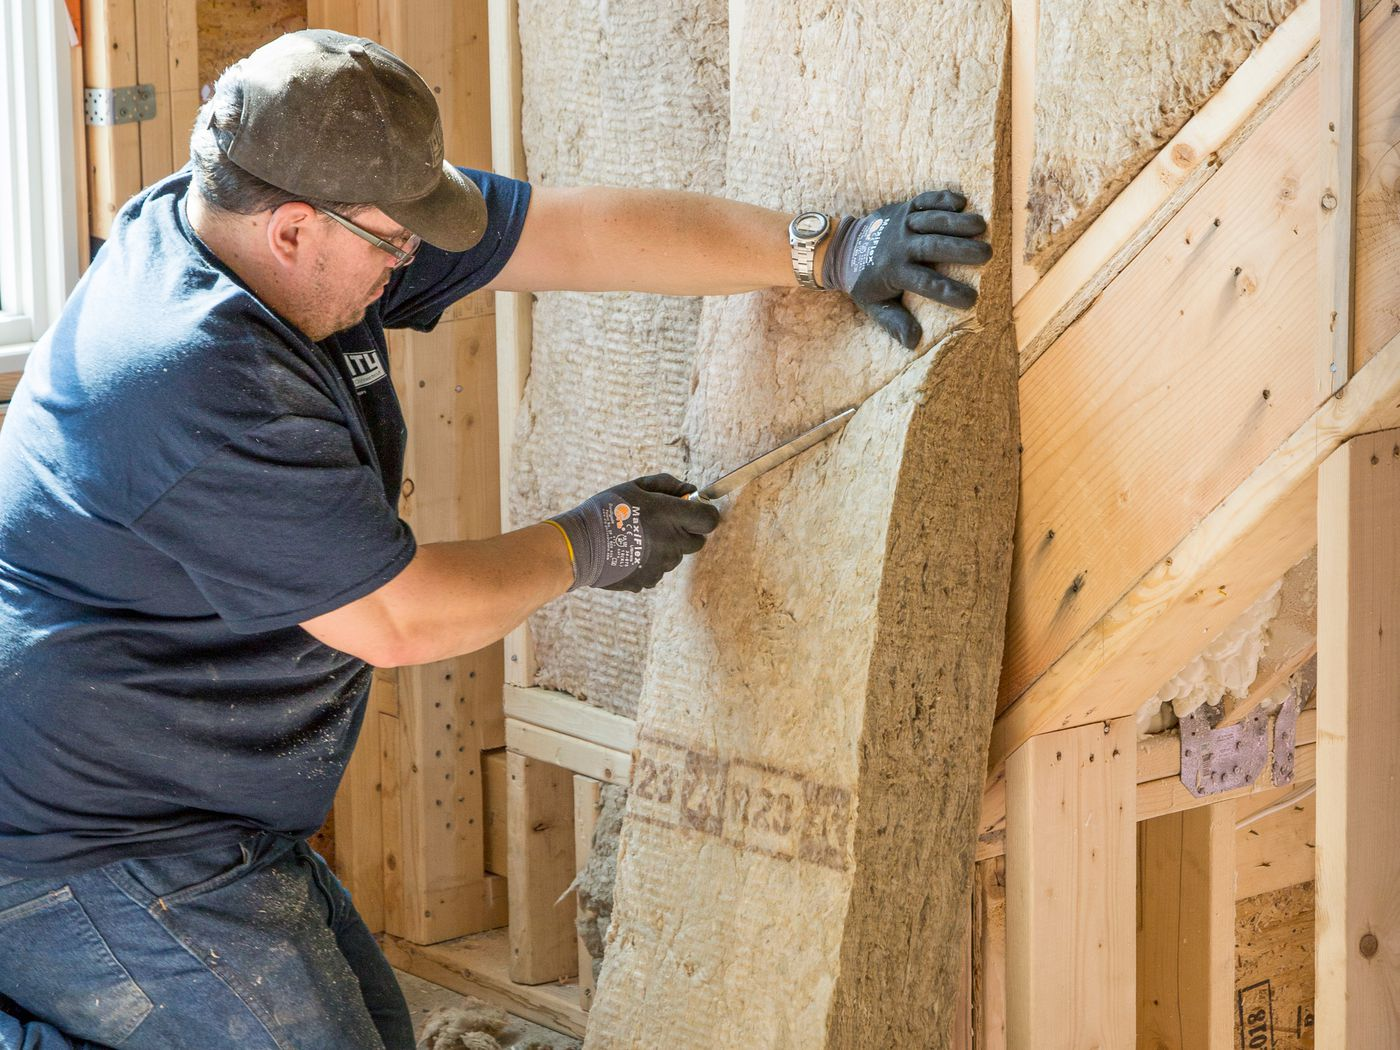 How to Add Wall Insulation in an Old House without Damage - This